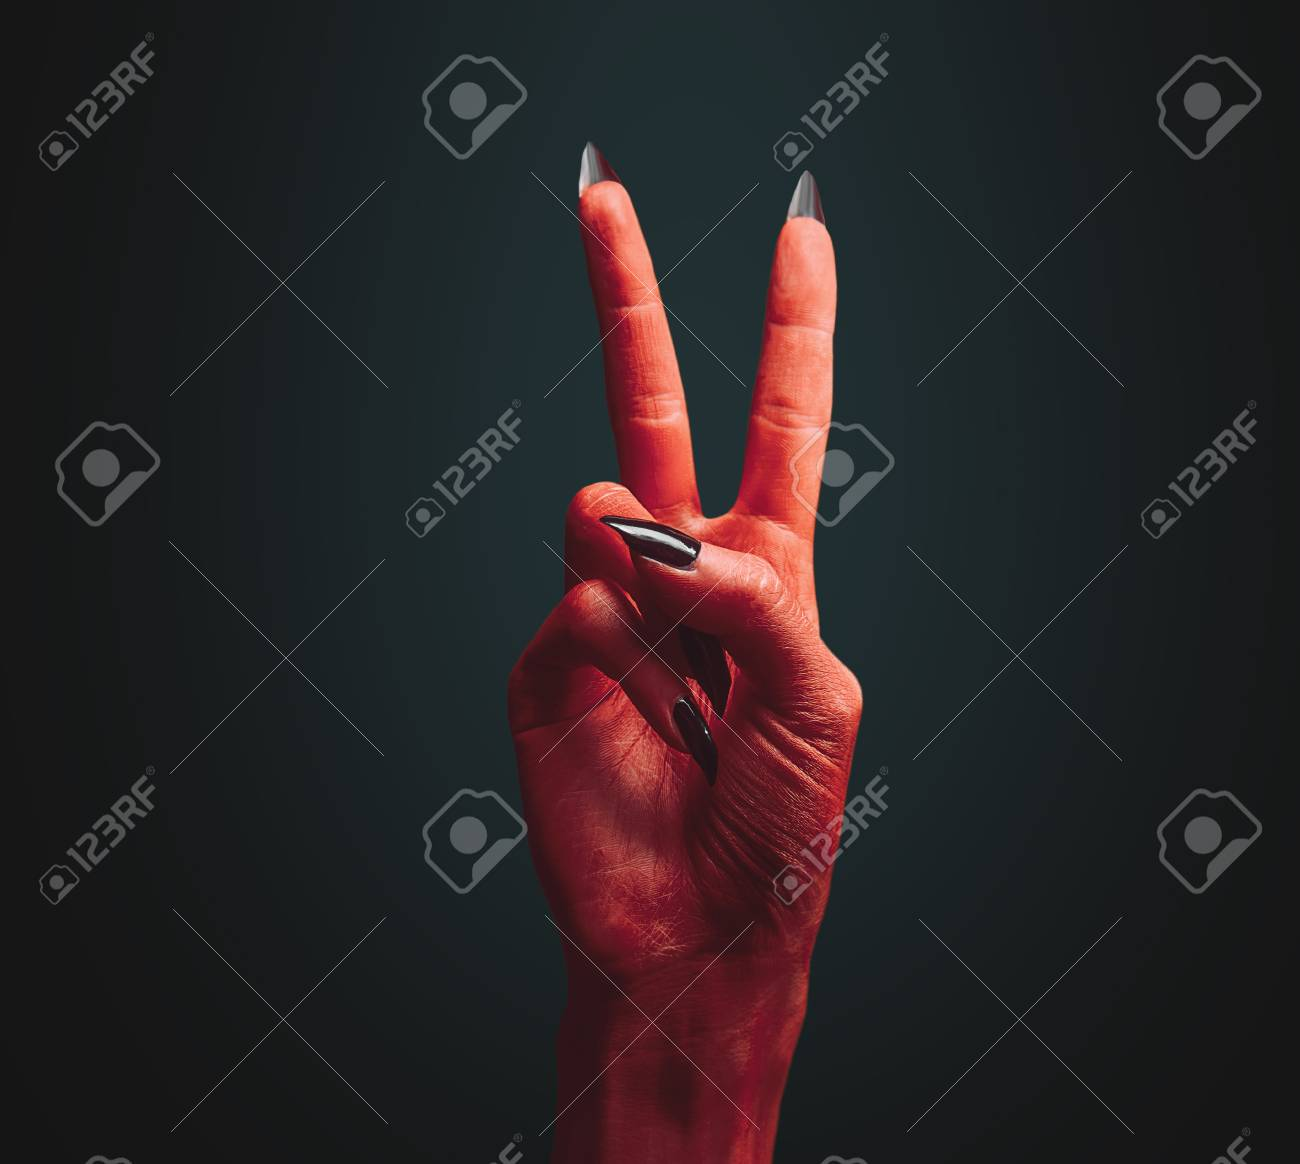 red devil hand on dark peace hand sign halloween or horror